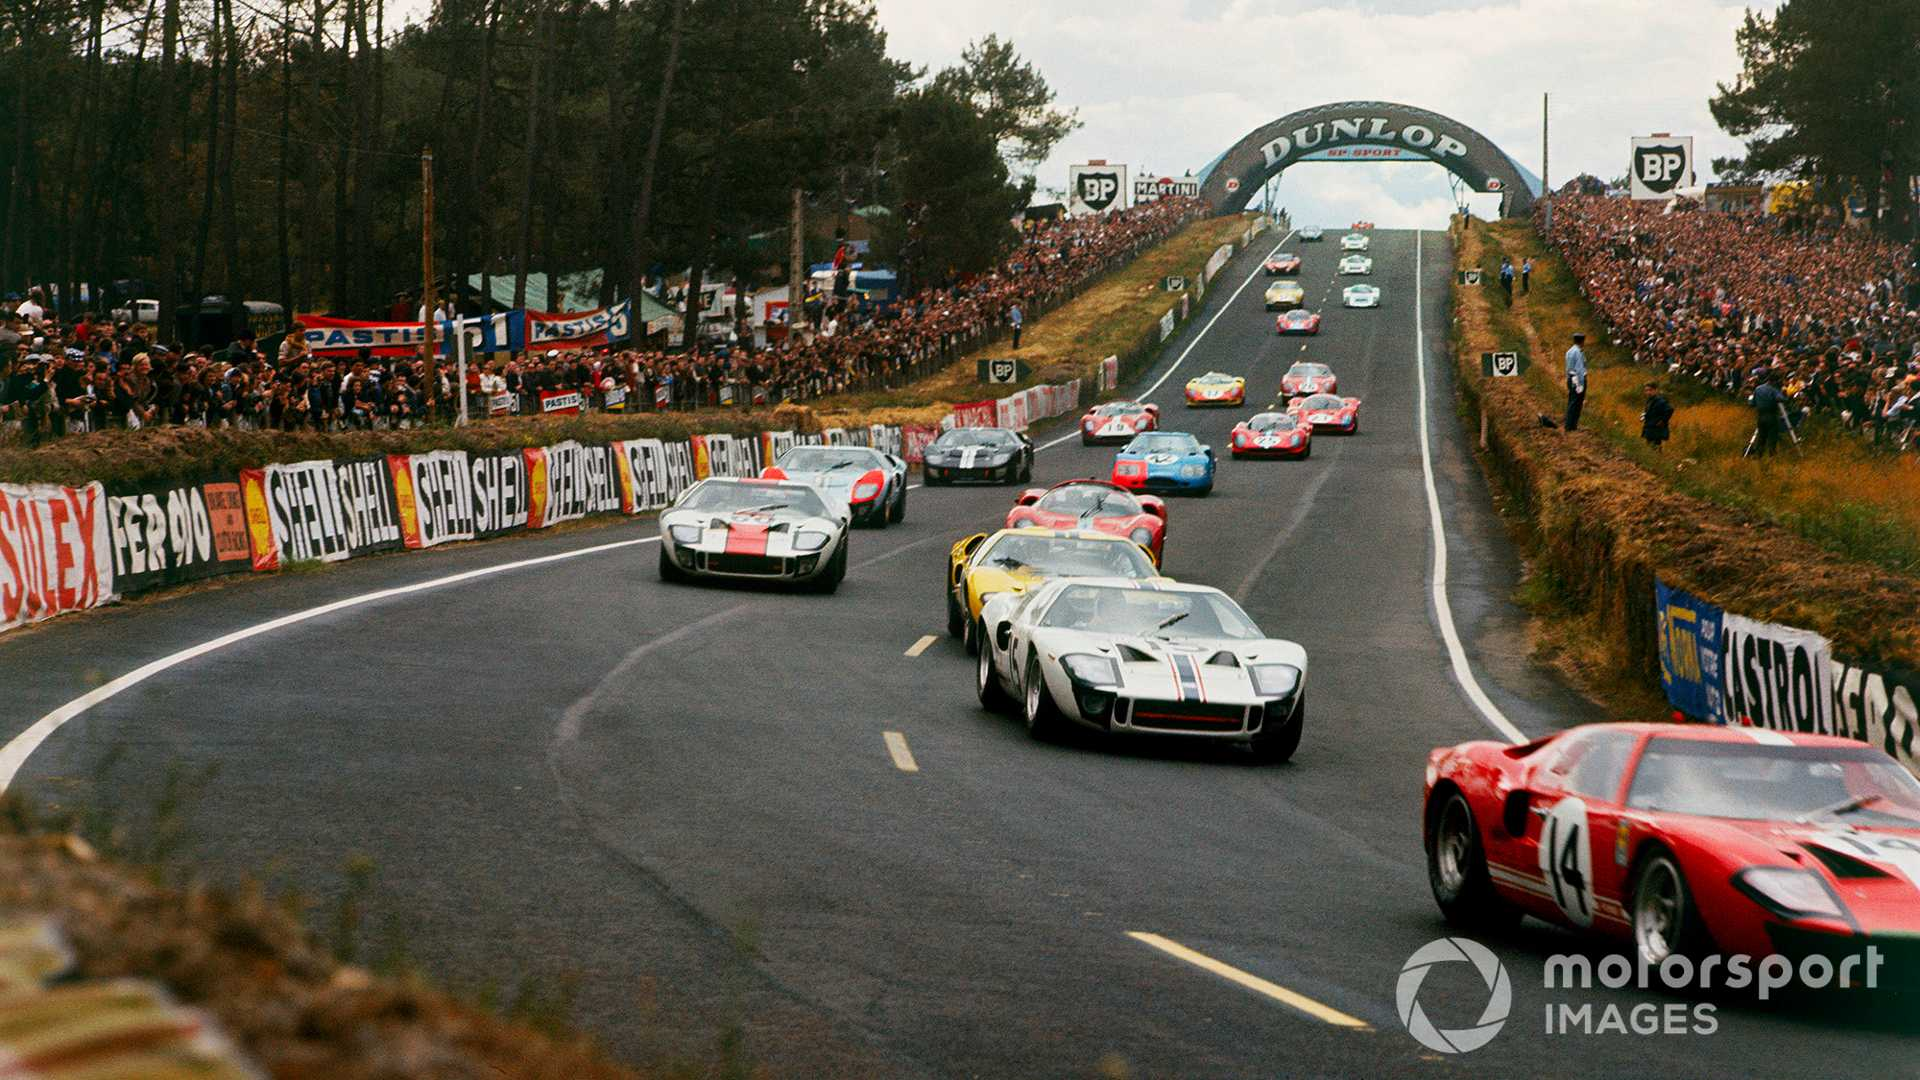 Uncovered Lost Footage From The 1966 Le Mans Ford V Ferrari Duel